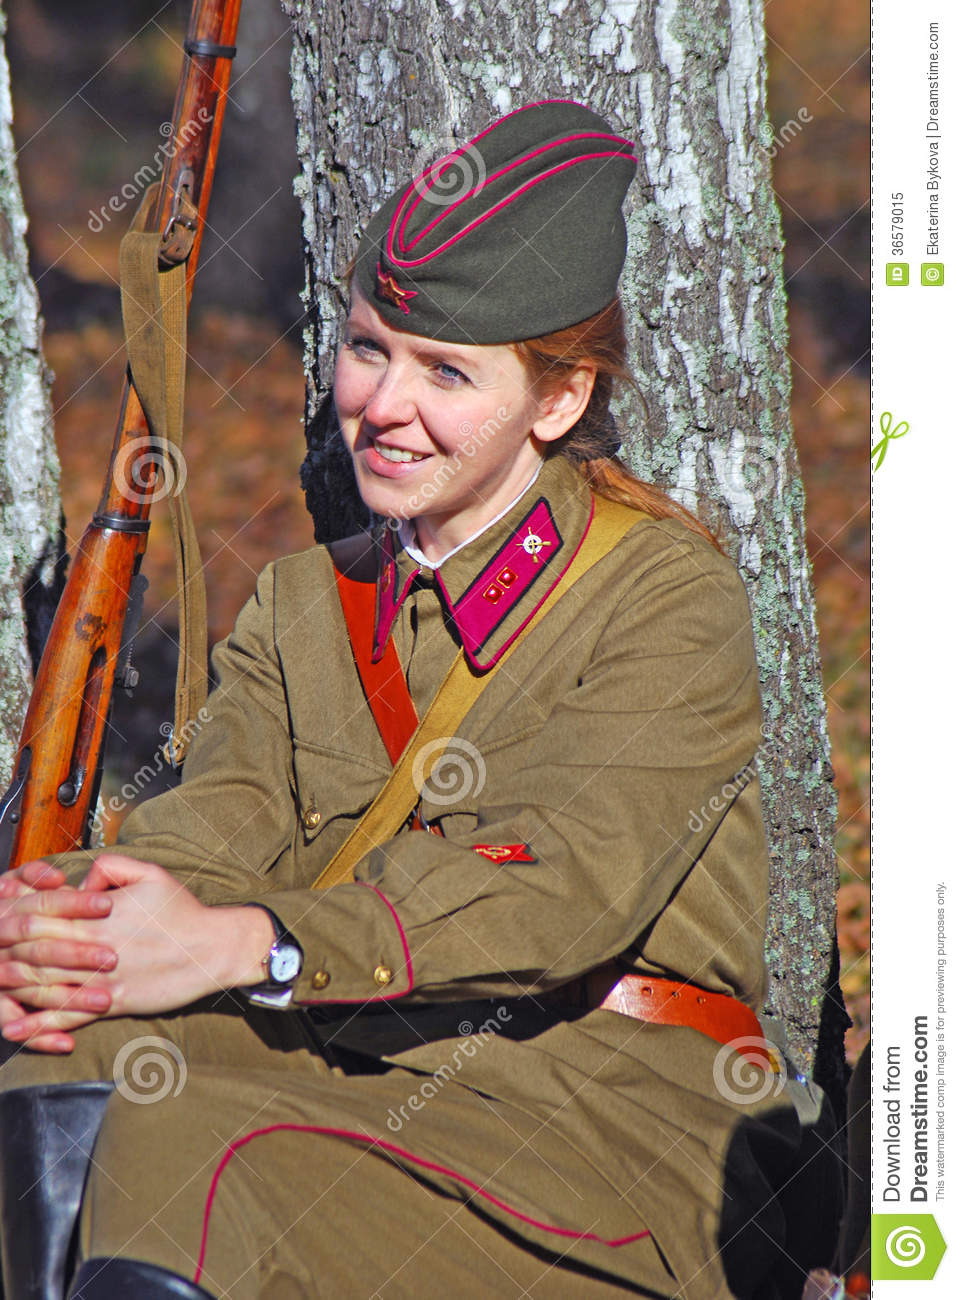 O To Ww Bing Comsquare Root 123: Russian Soldier-reenactor Woman. Editorial Image